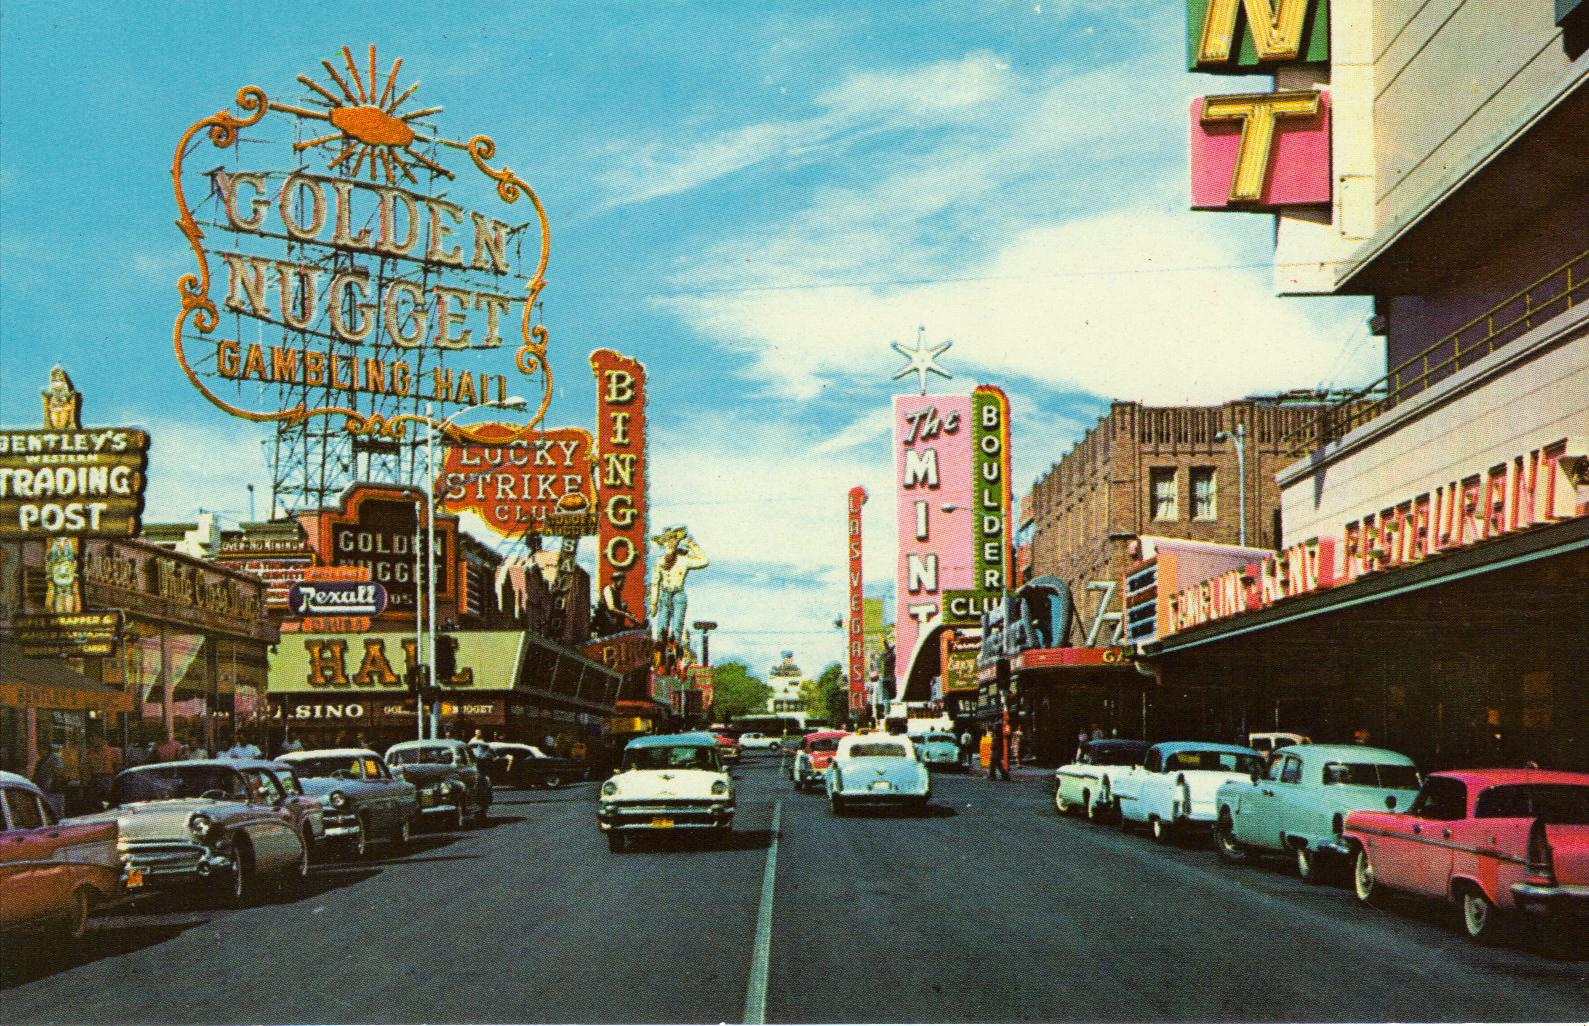 Las vegas 1970 pictures COMET /EARTH IMPACT CHRONOLOGY RELATED SITES